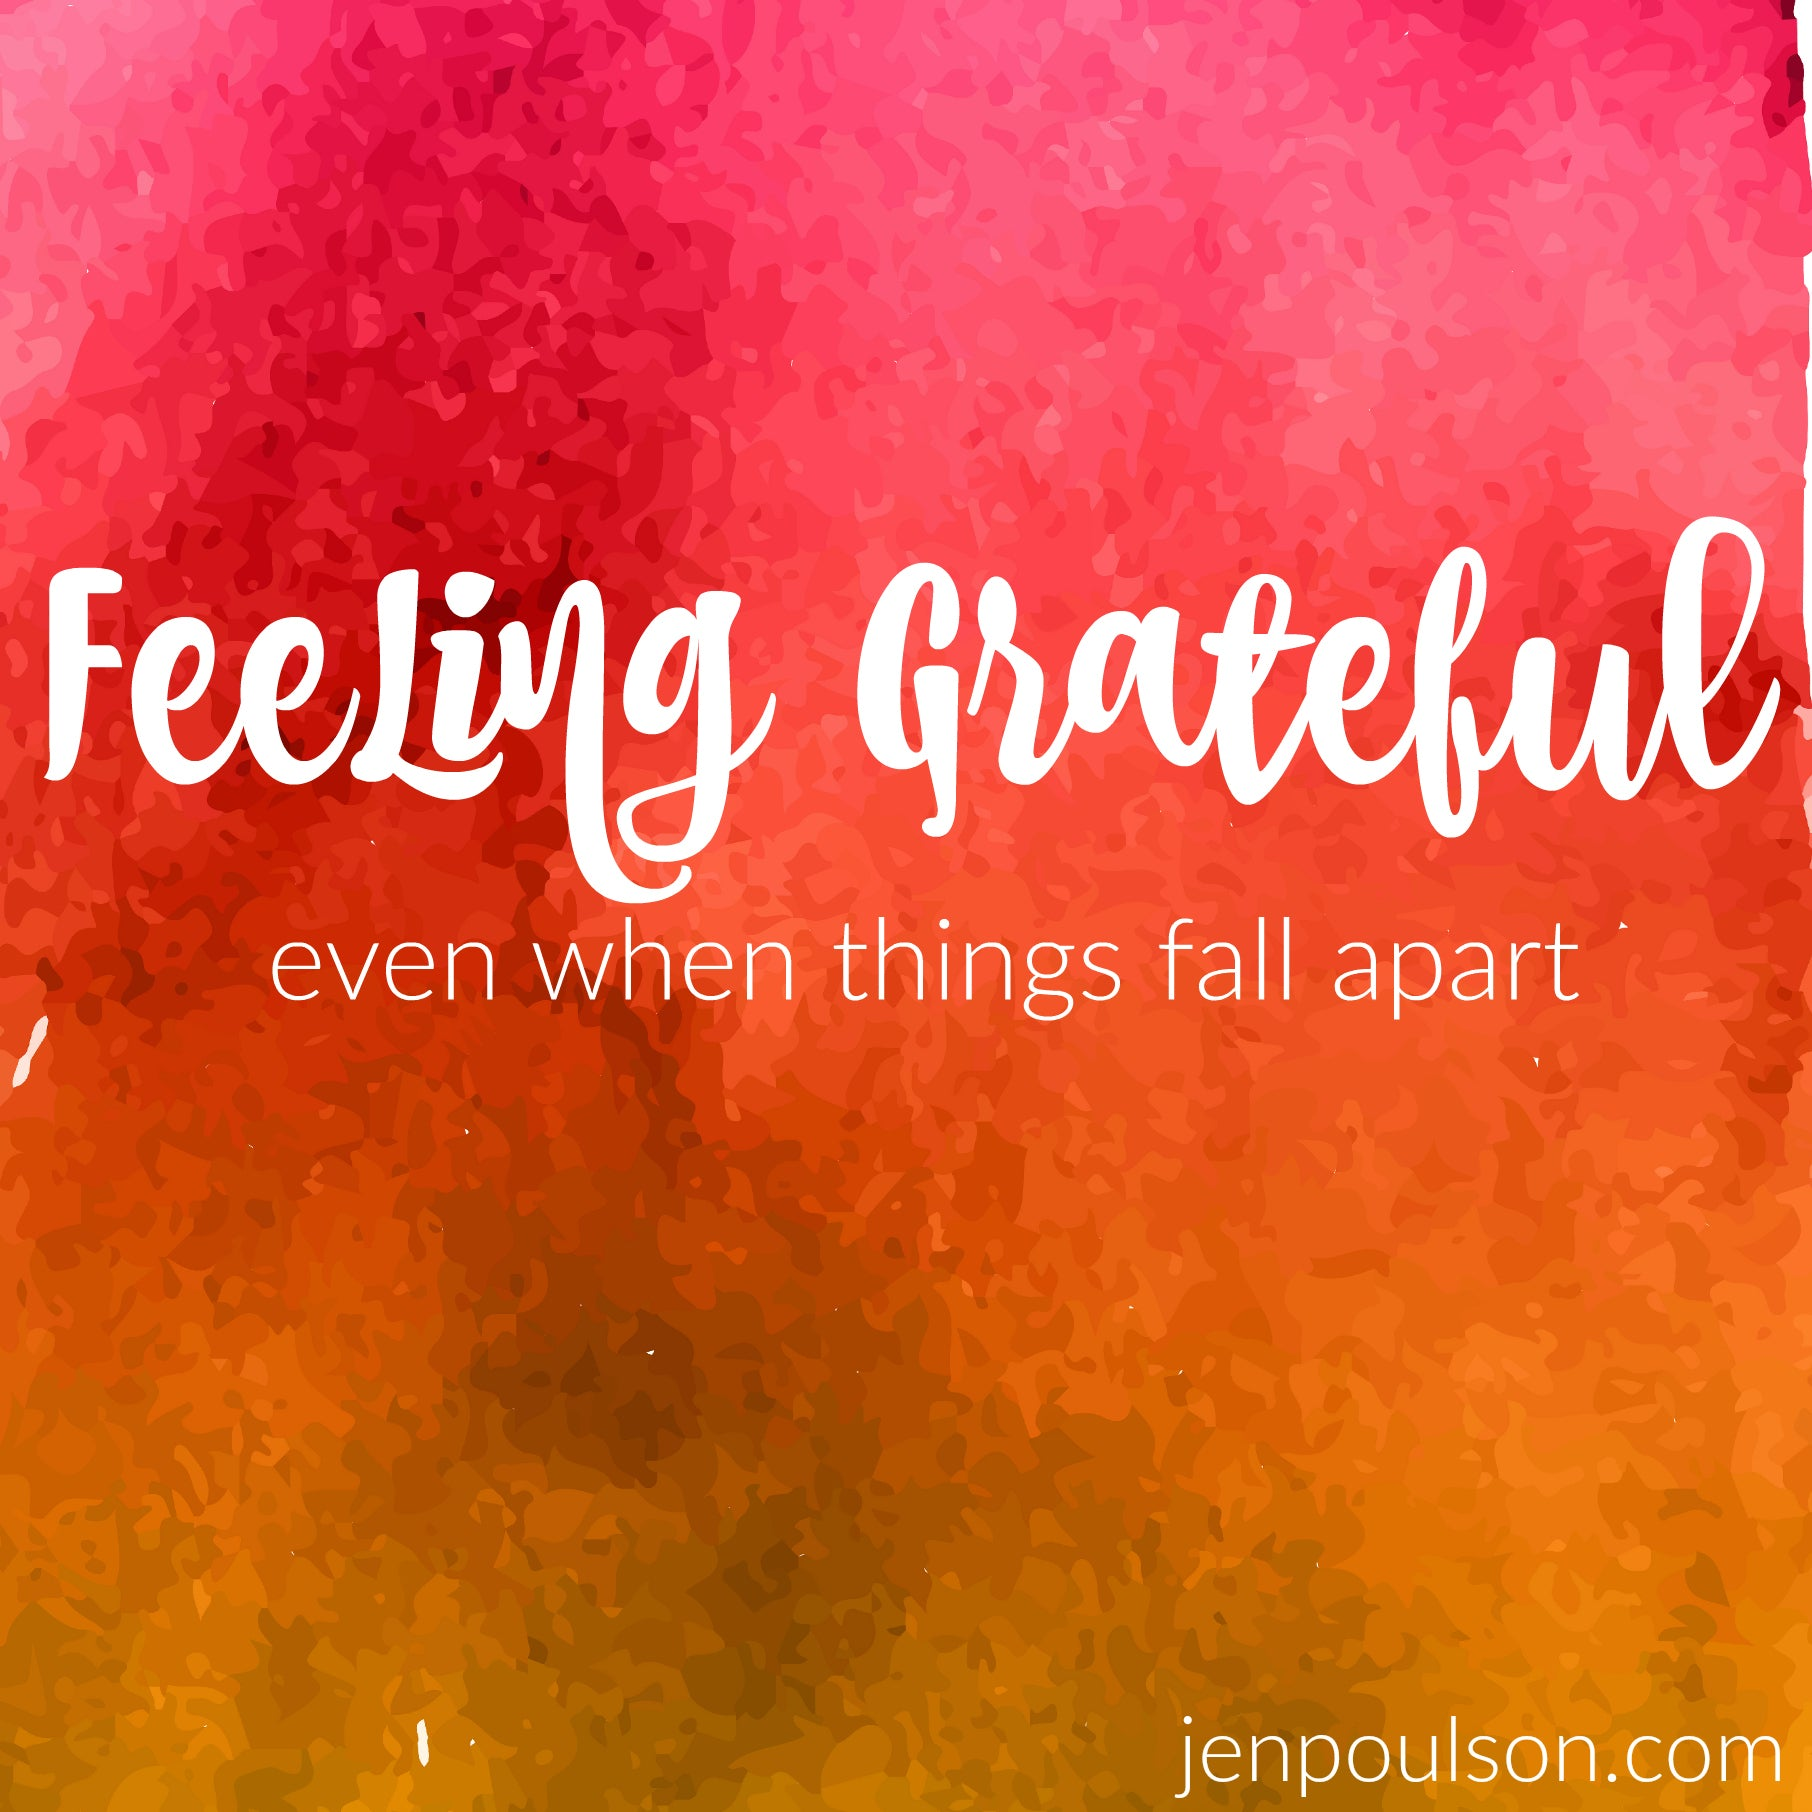 Feeling grateful even when things fall apart